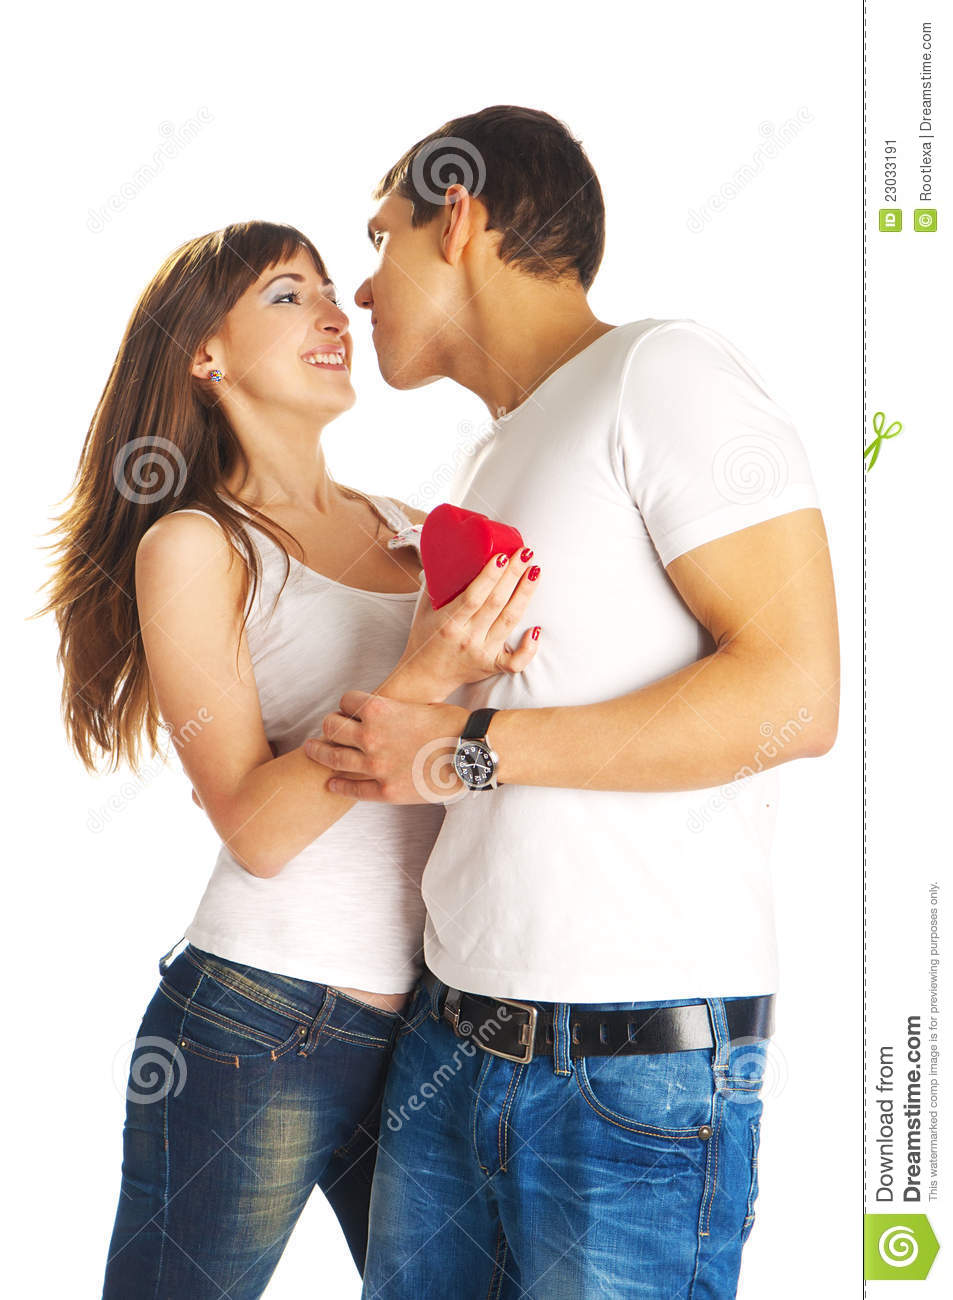 dating site reviews 2017